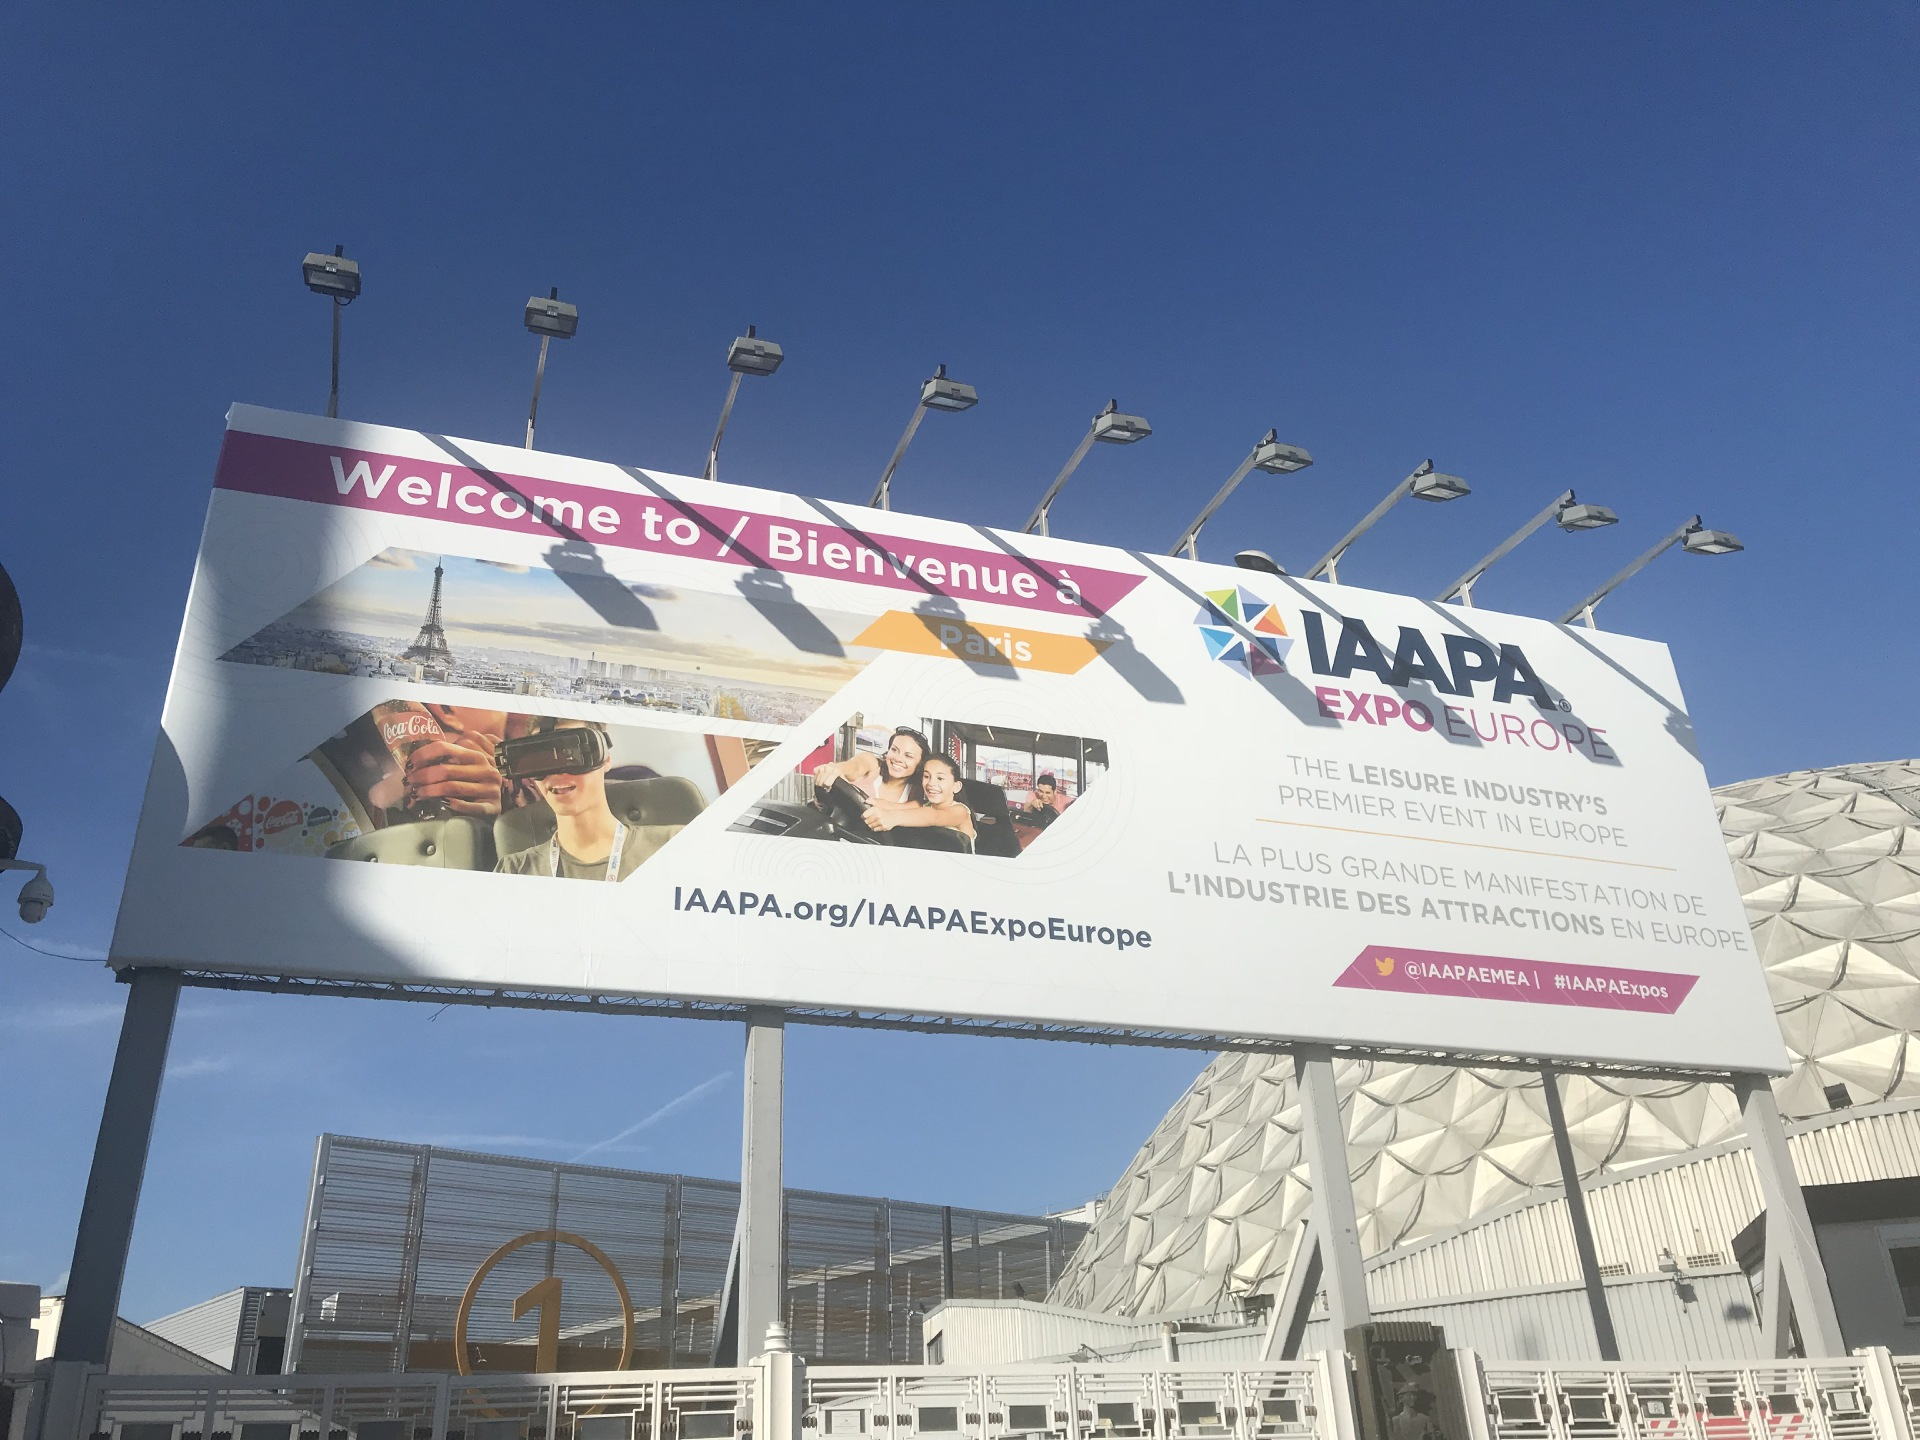 [Exhibition News] IAAPA EXPO EURO in Paris, 2019